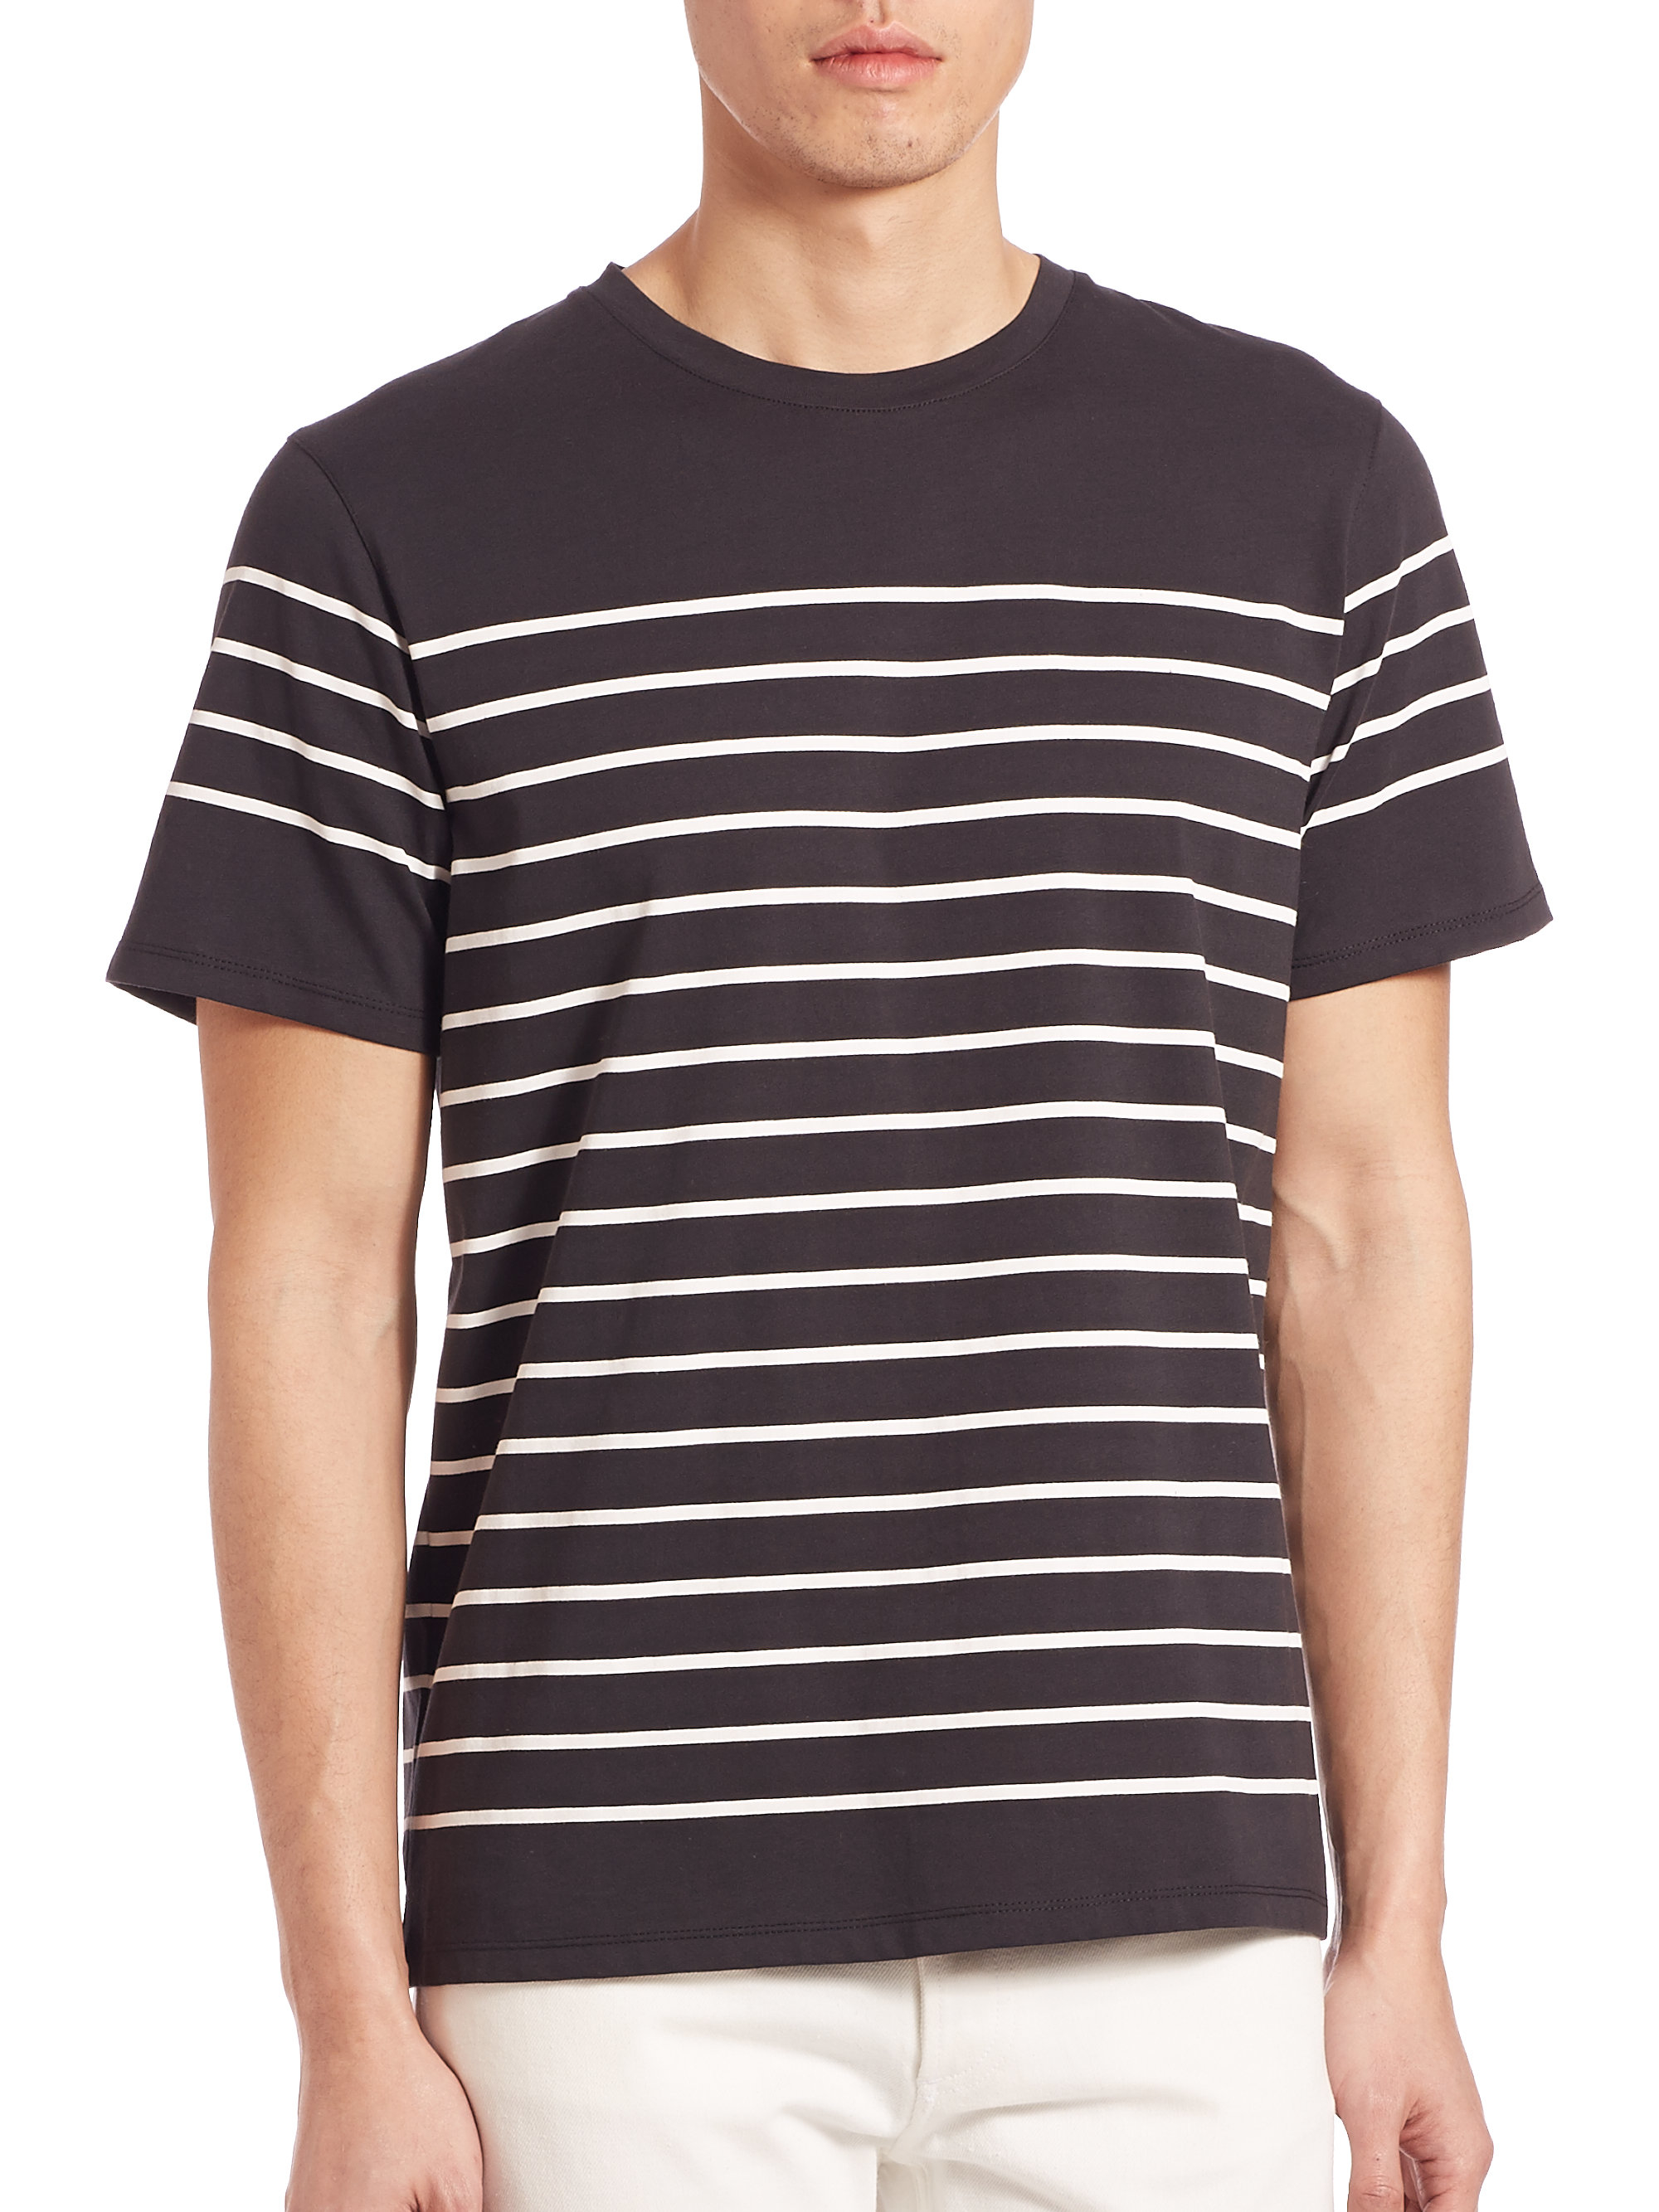 A p c calanque stripe tee in black for men lyst for Apc white t shirt